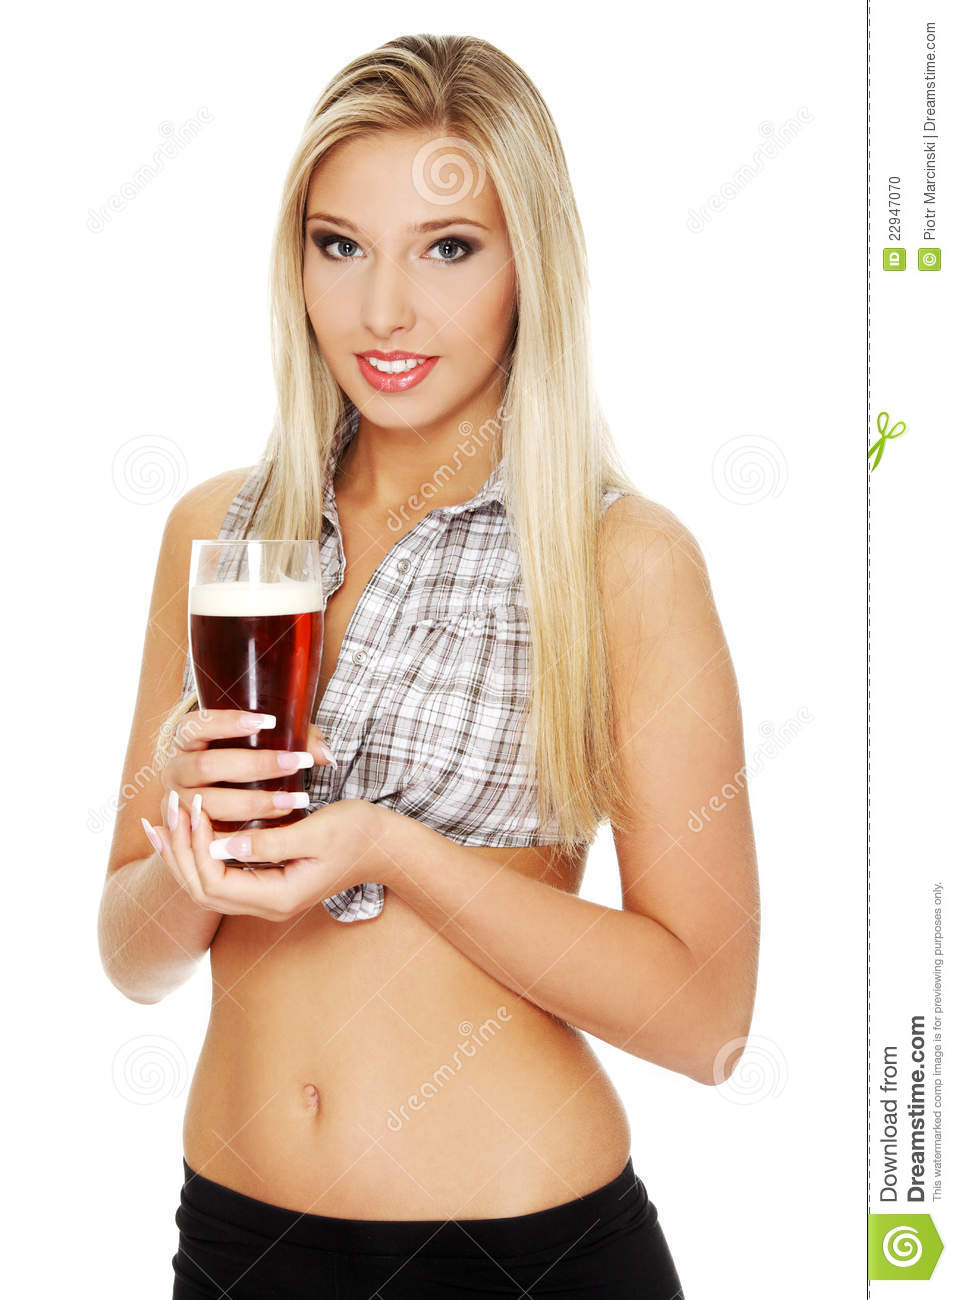 Blonde girl drinks a bowle of cum bukakke 8